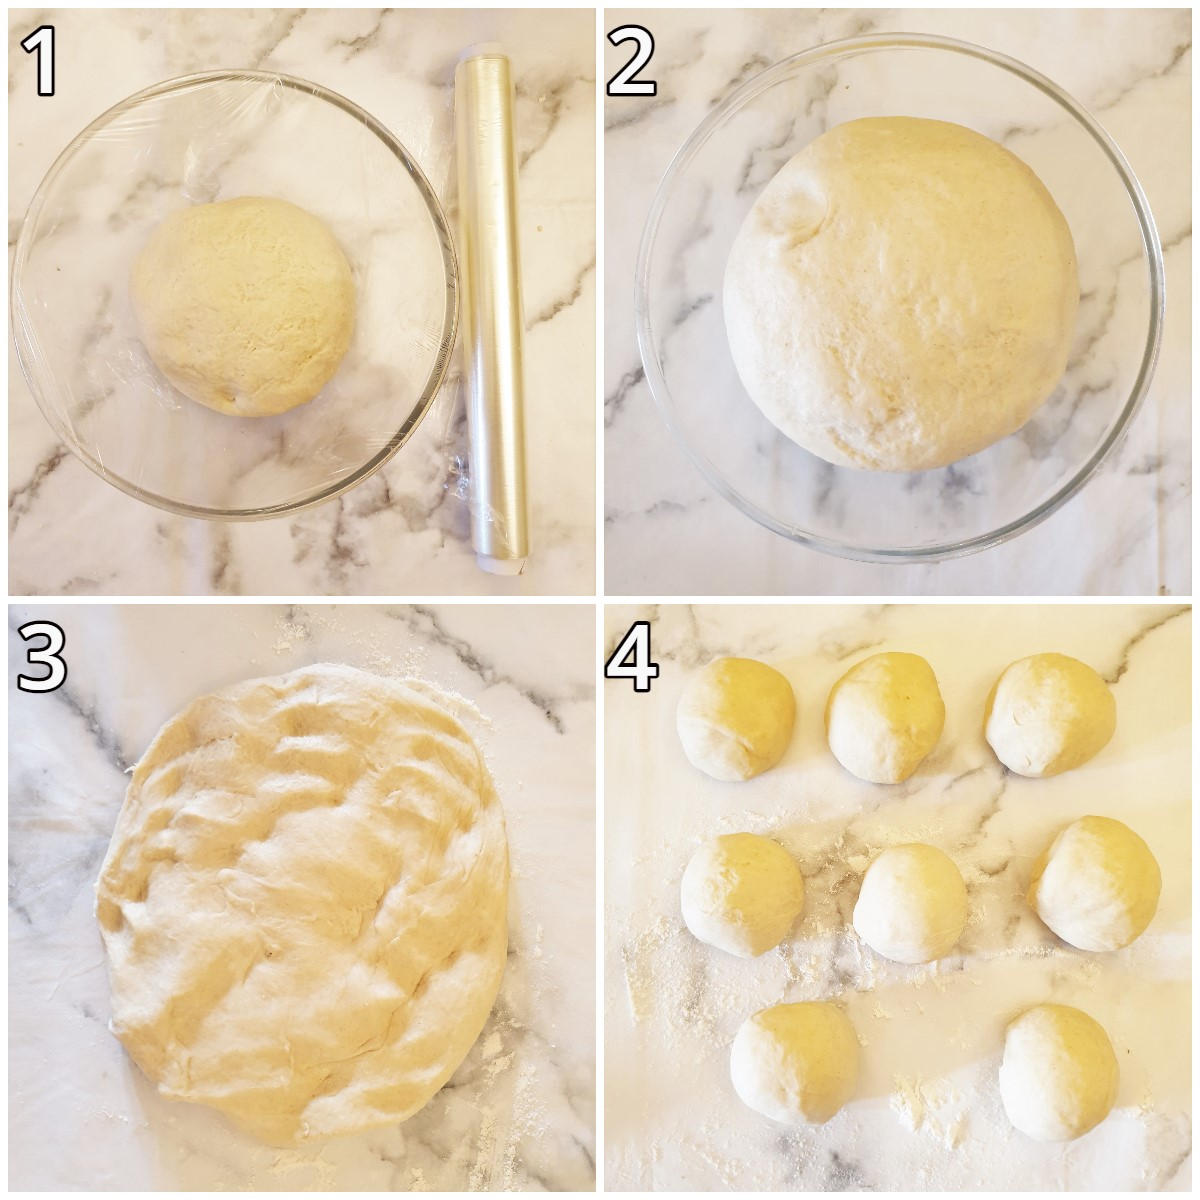 Collage showing the rise of the dough, and how to divide it into balls.